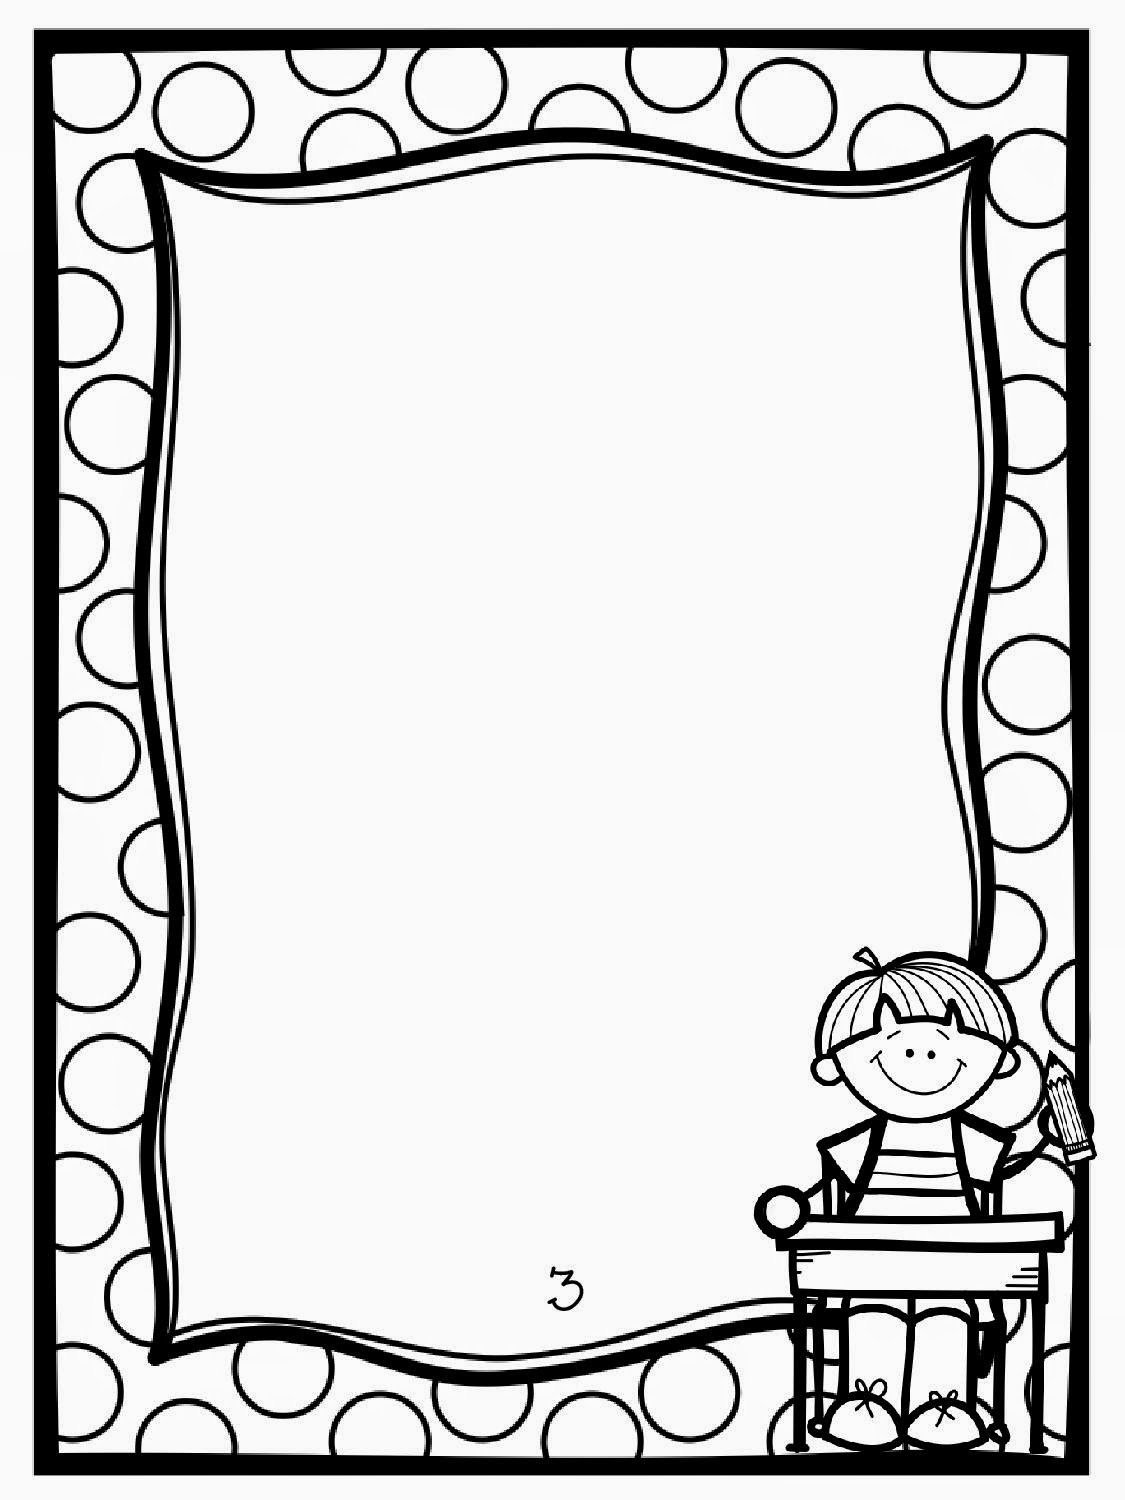 reading coloring pages - book page border